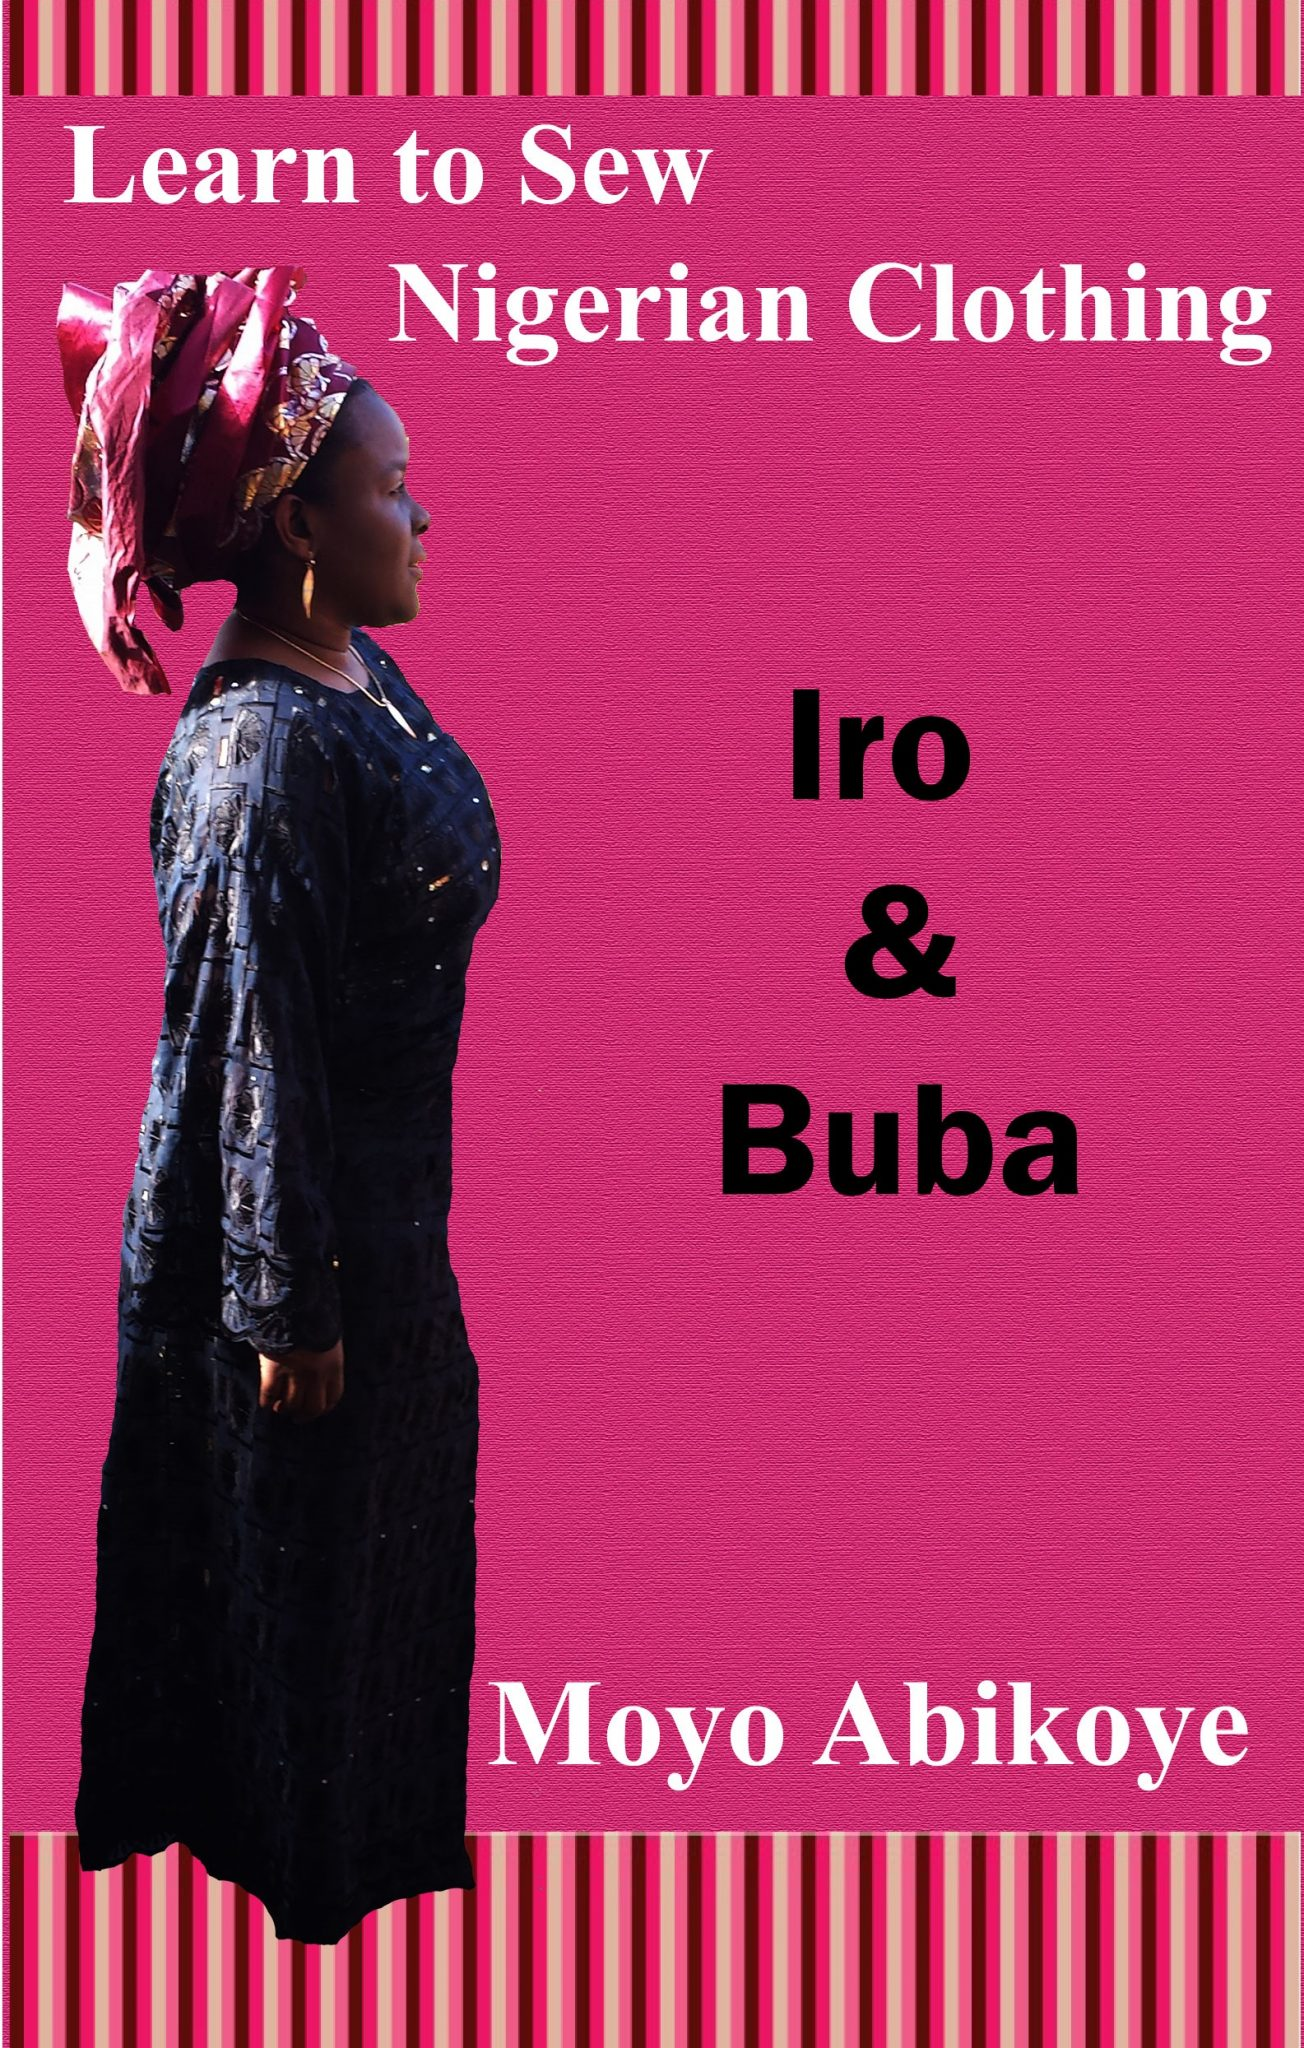 Learn to sew Nigerian clothing: Iro & Buba